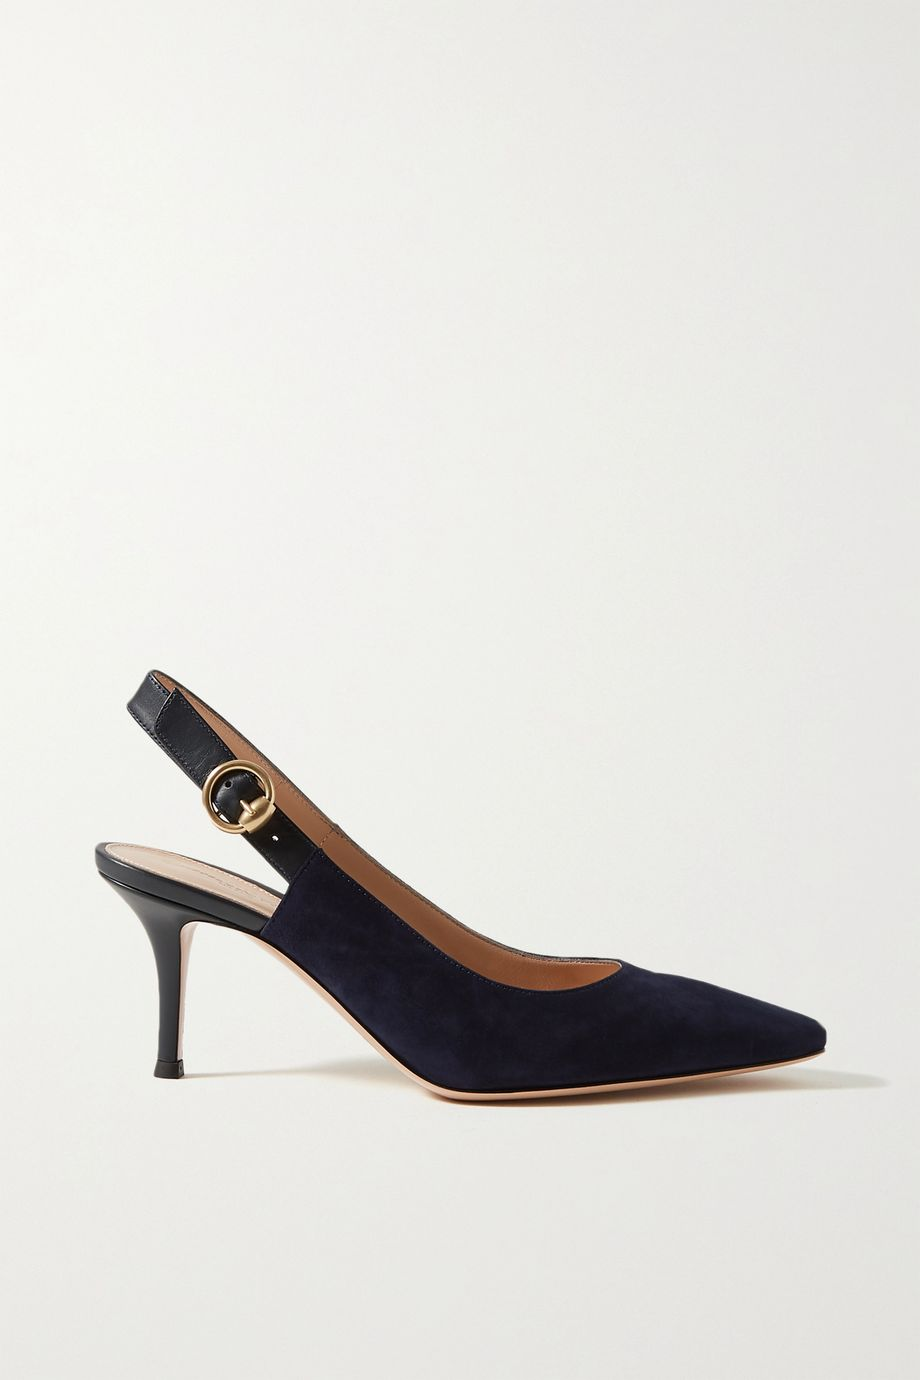 Gianvito Rossi 70 suede and leather slingback pumps